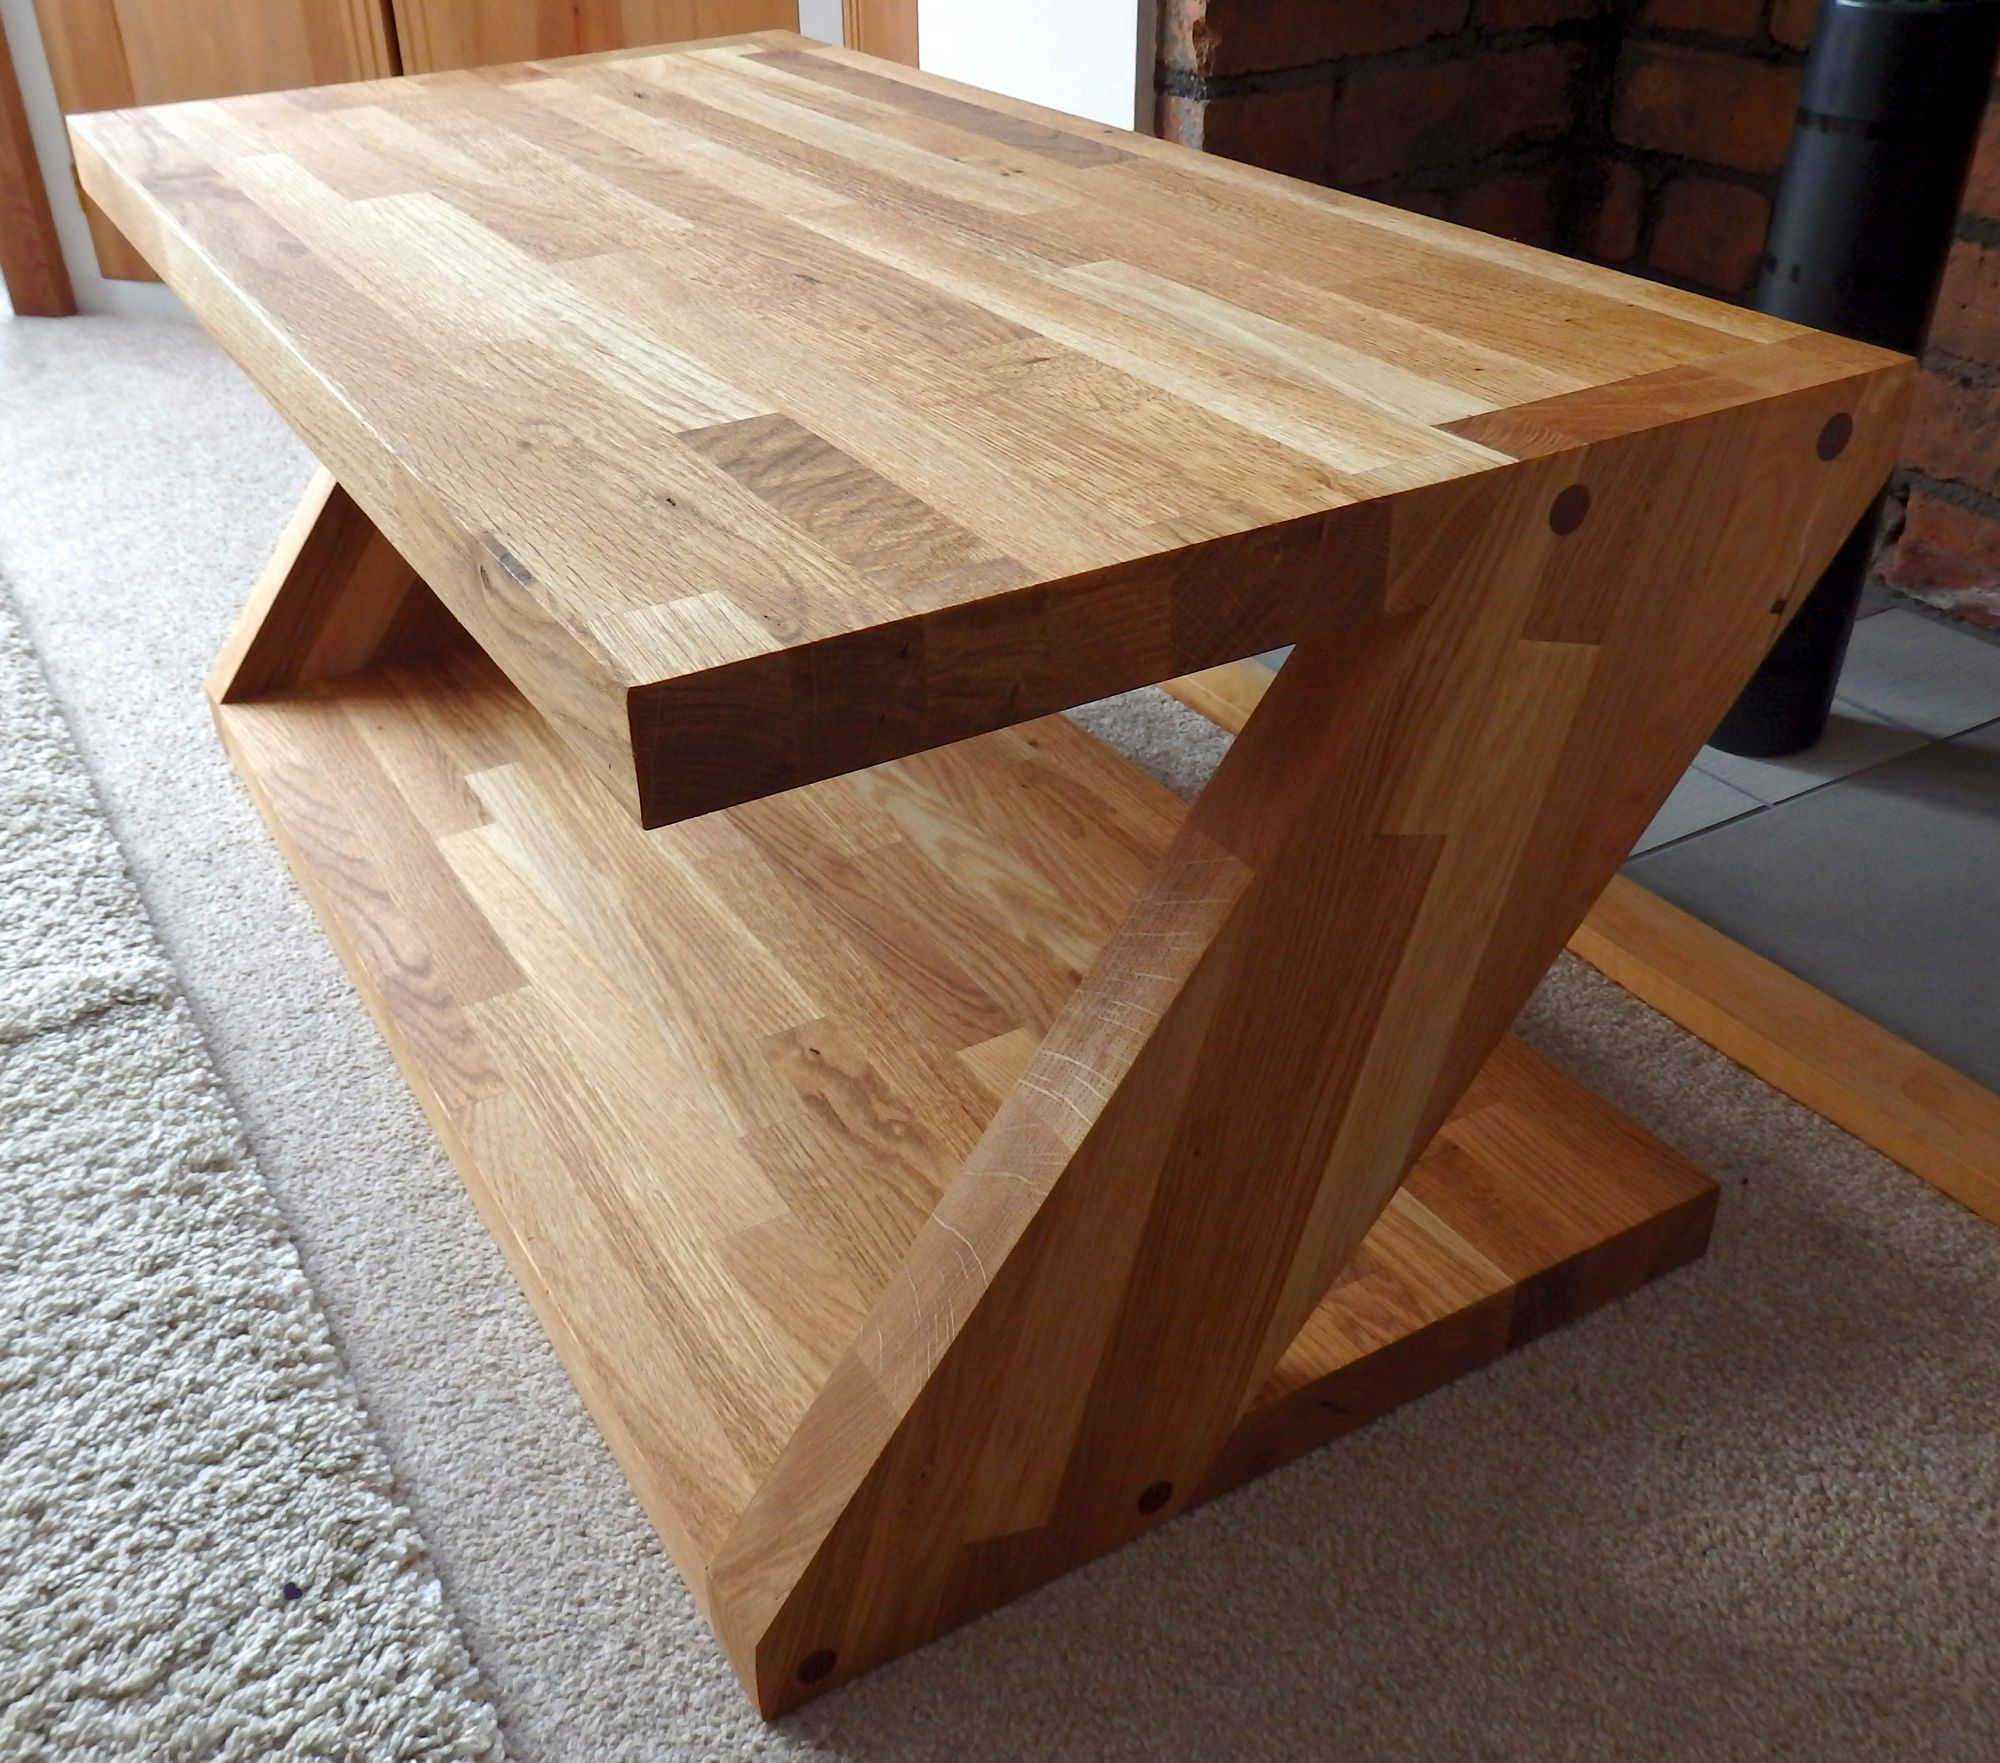 purple heart wood furniture. Made From Offcuts Of Oak Kitchen Worktop And Purple Heart Plugs To Add A Little Spice Wood Furniture C